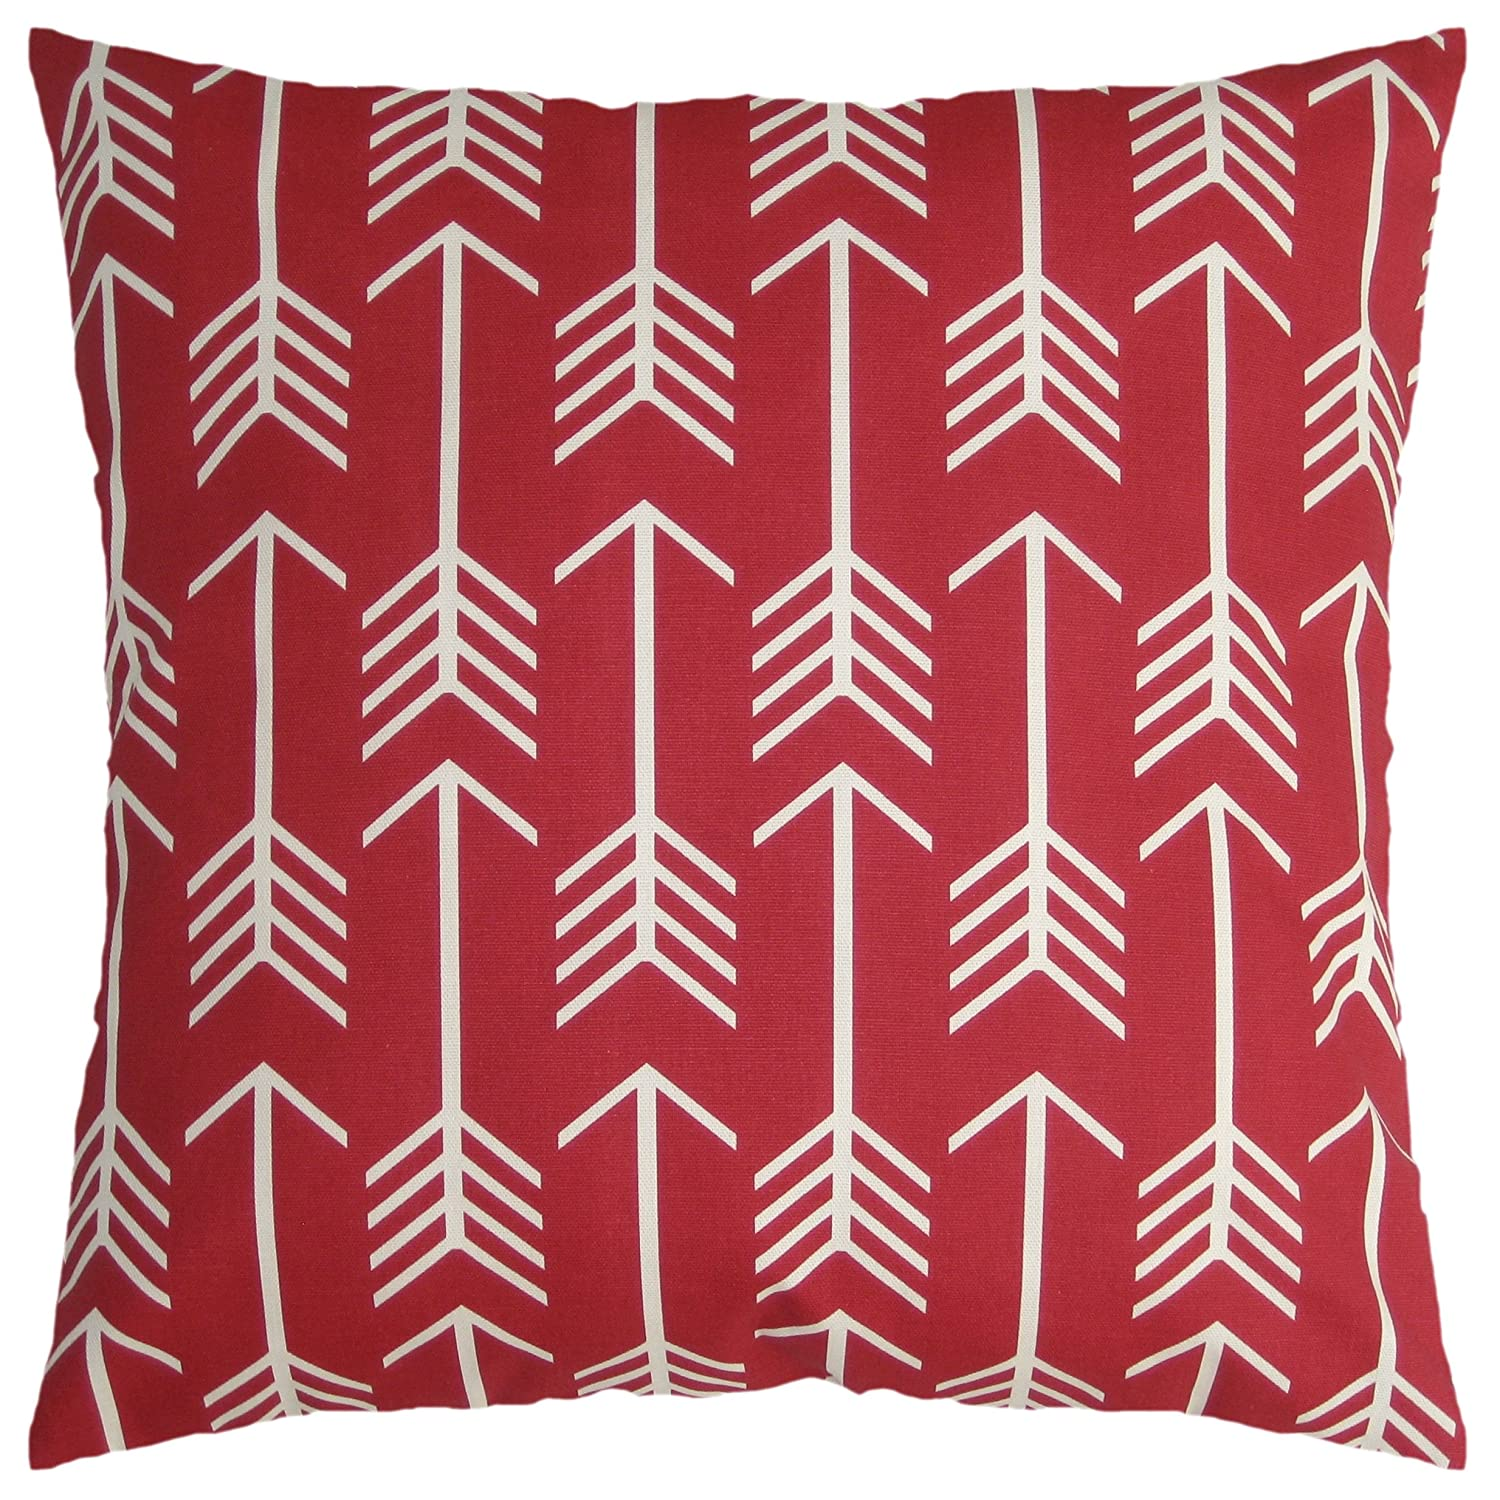 Arrow Cotton Canvas Decorative Throw Pillow Cover (Christmas